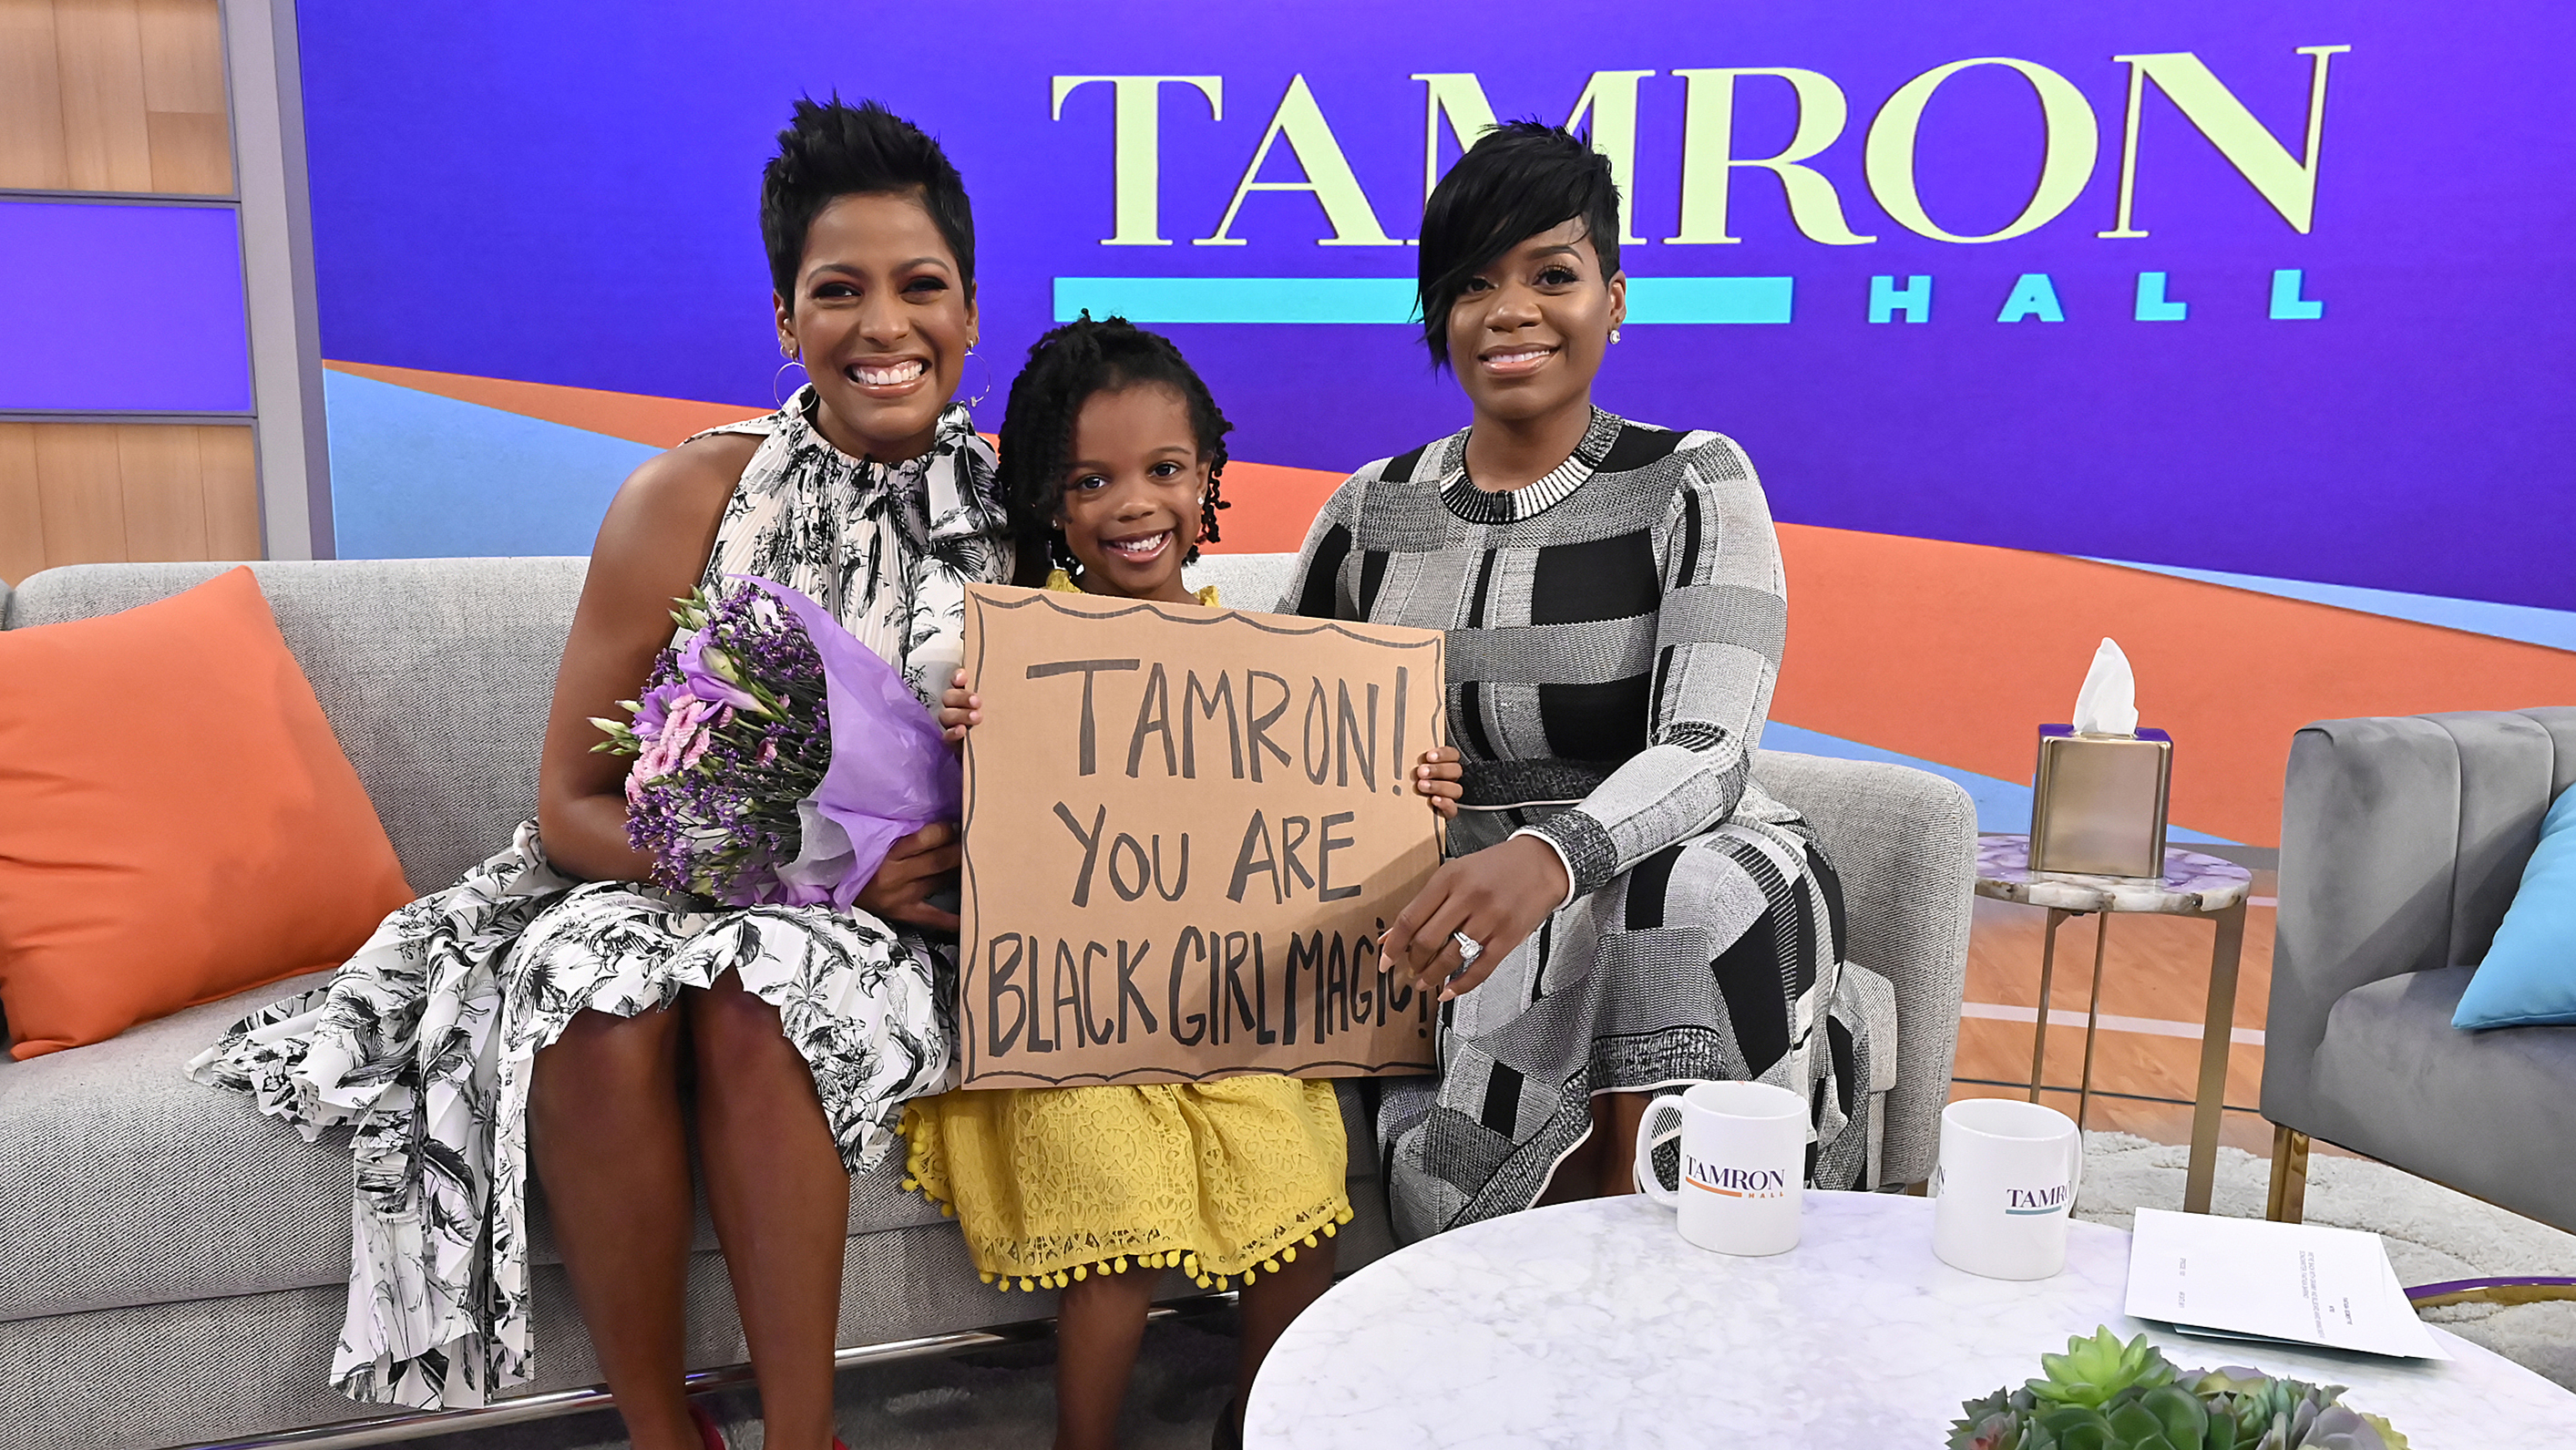 """On the premiere episode, Tamron met her """"Black Girl Magic"""" fan and Fantasia performed the """"Tamron Hall"""" theme song, """"SHINE."""" (Walt Disney Television/Jeff Neira)"""